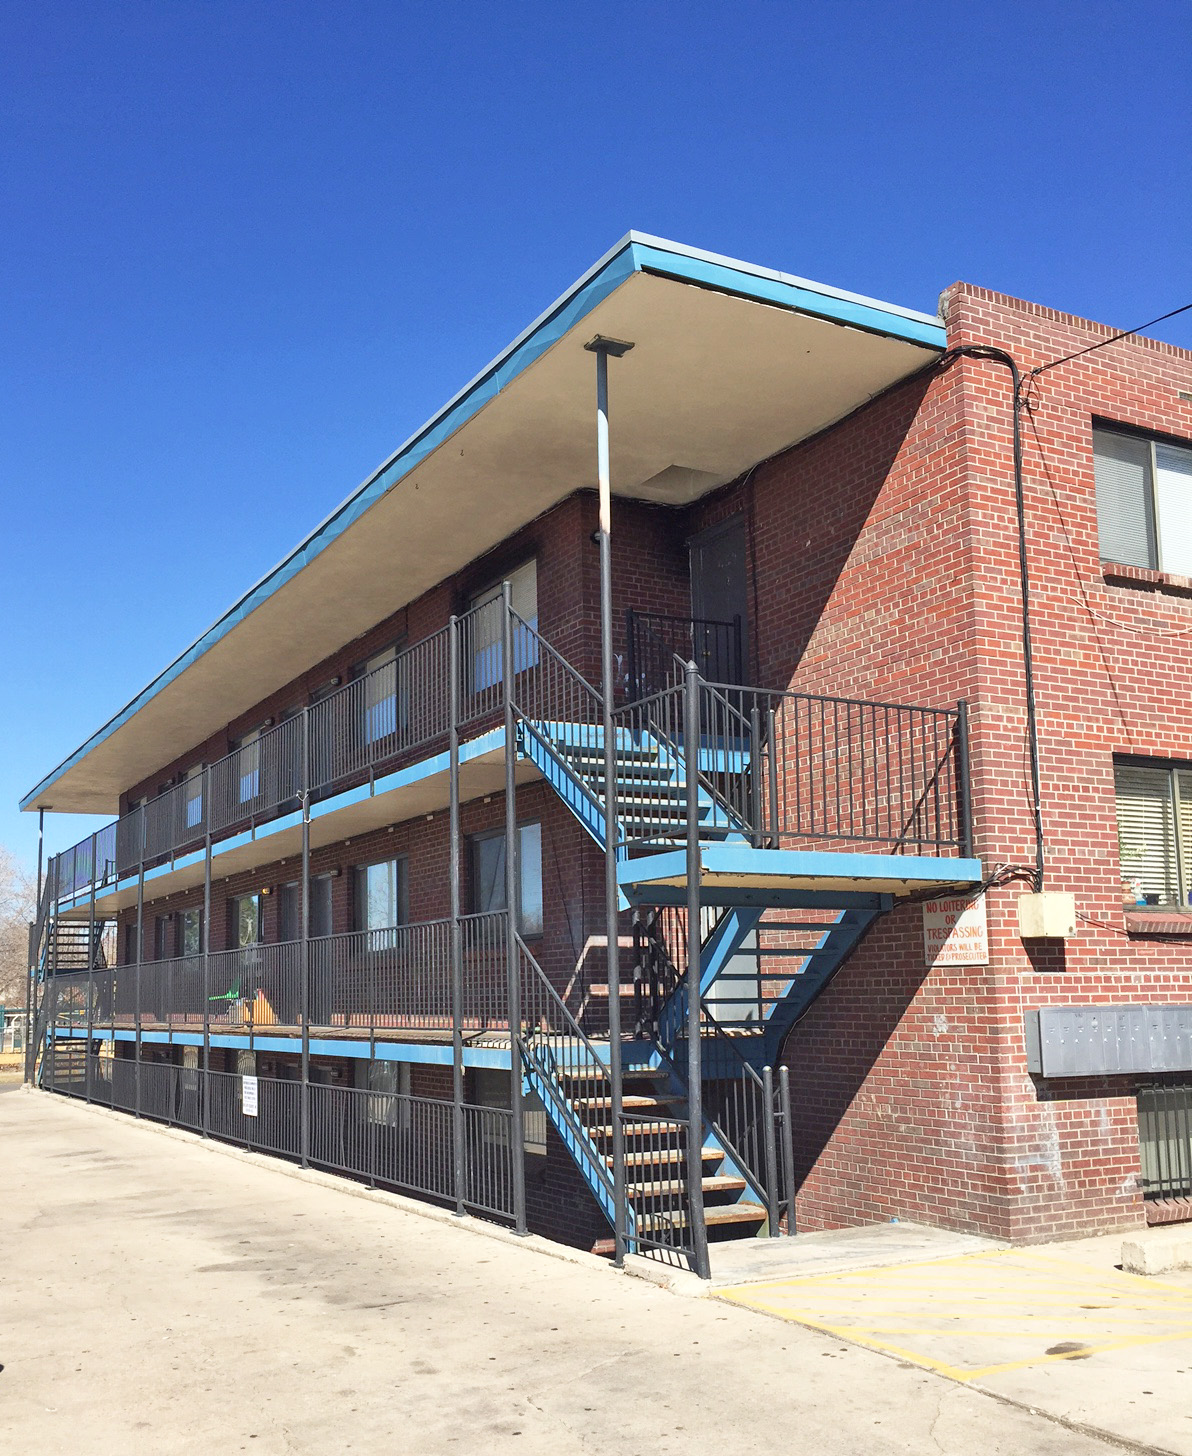 Denver Apartment Locator: Central Denver Apartments Acquired For $2,350,000; 14